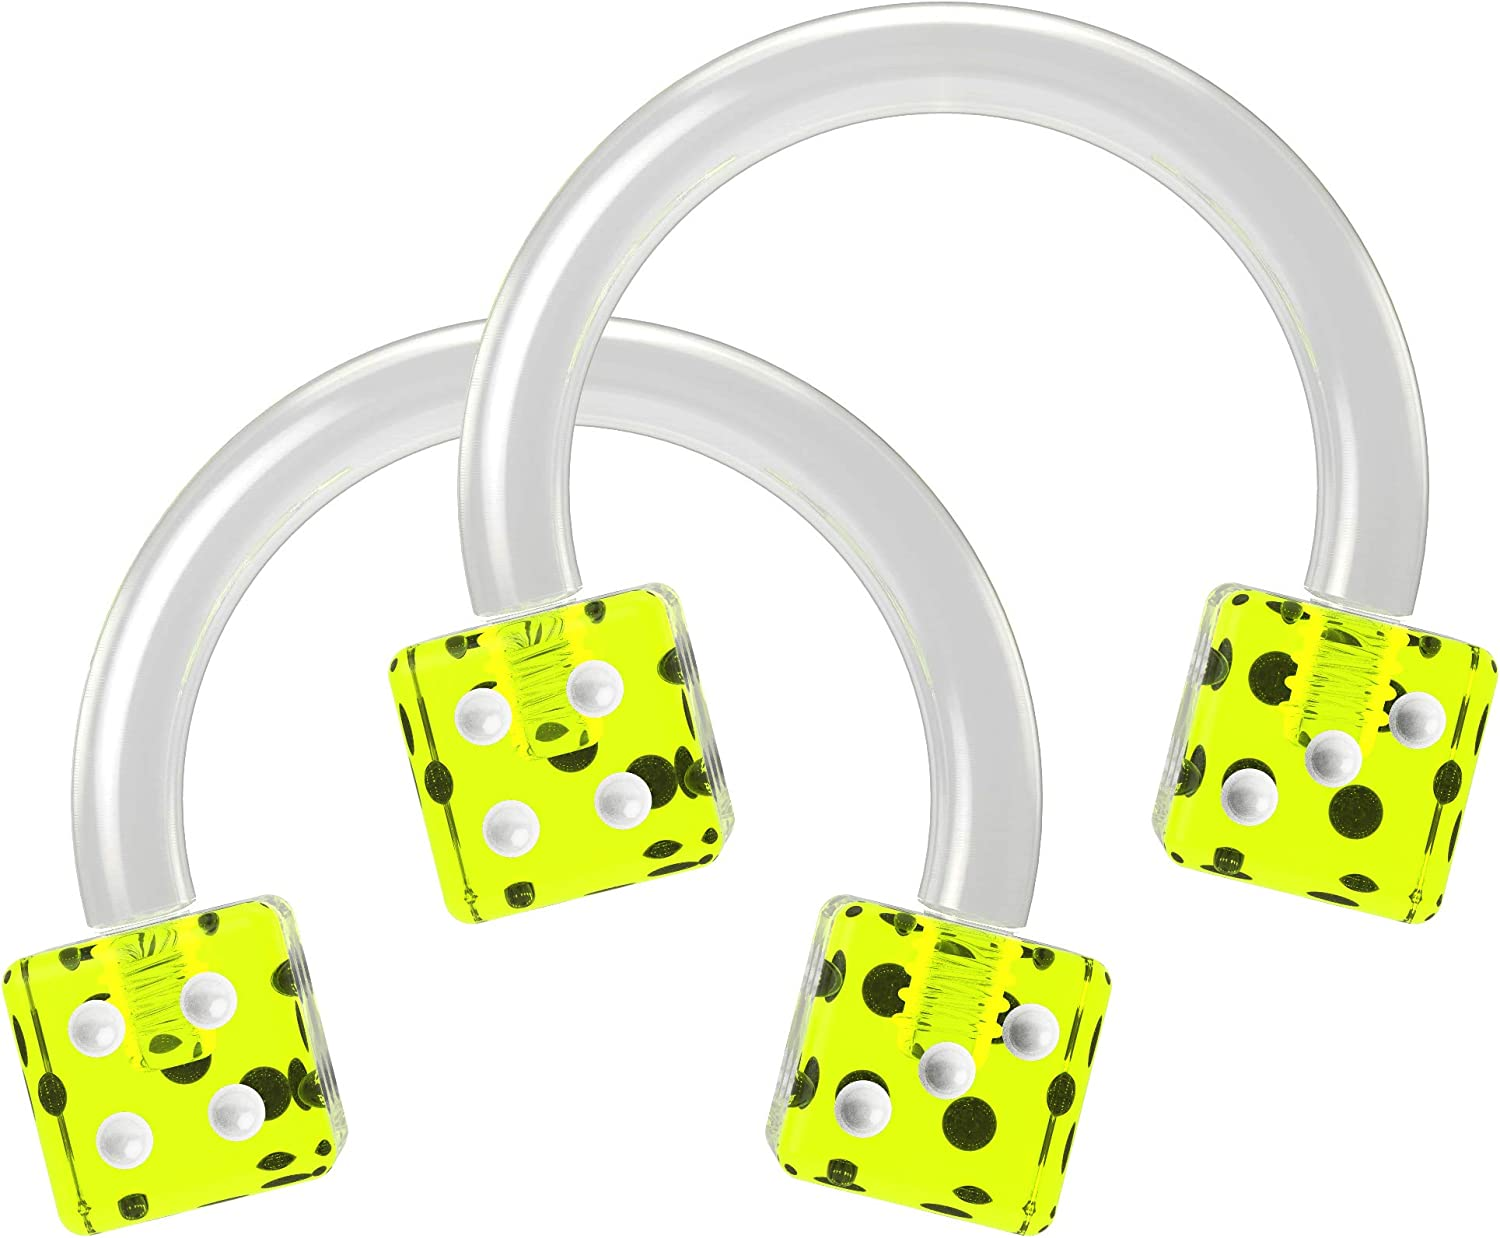 2pc 16g Cute Dice Circular Barbell Piercing Horseshoe Septum Cartilage Tragus Flexible Acrylic 8mm